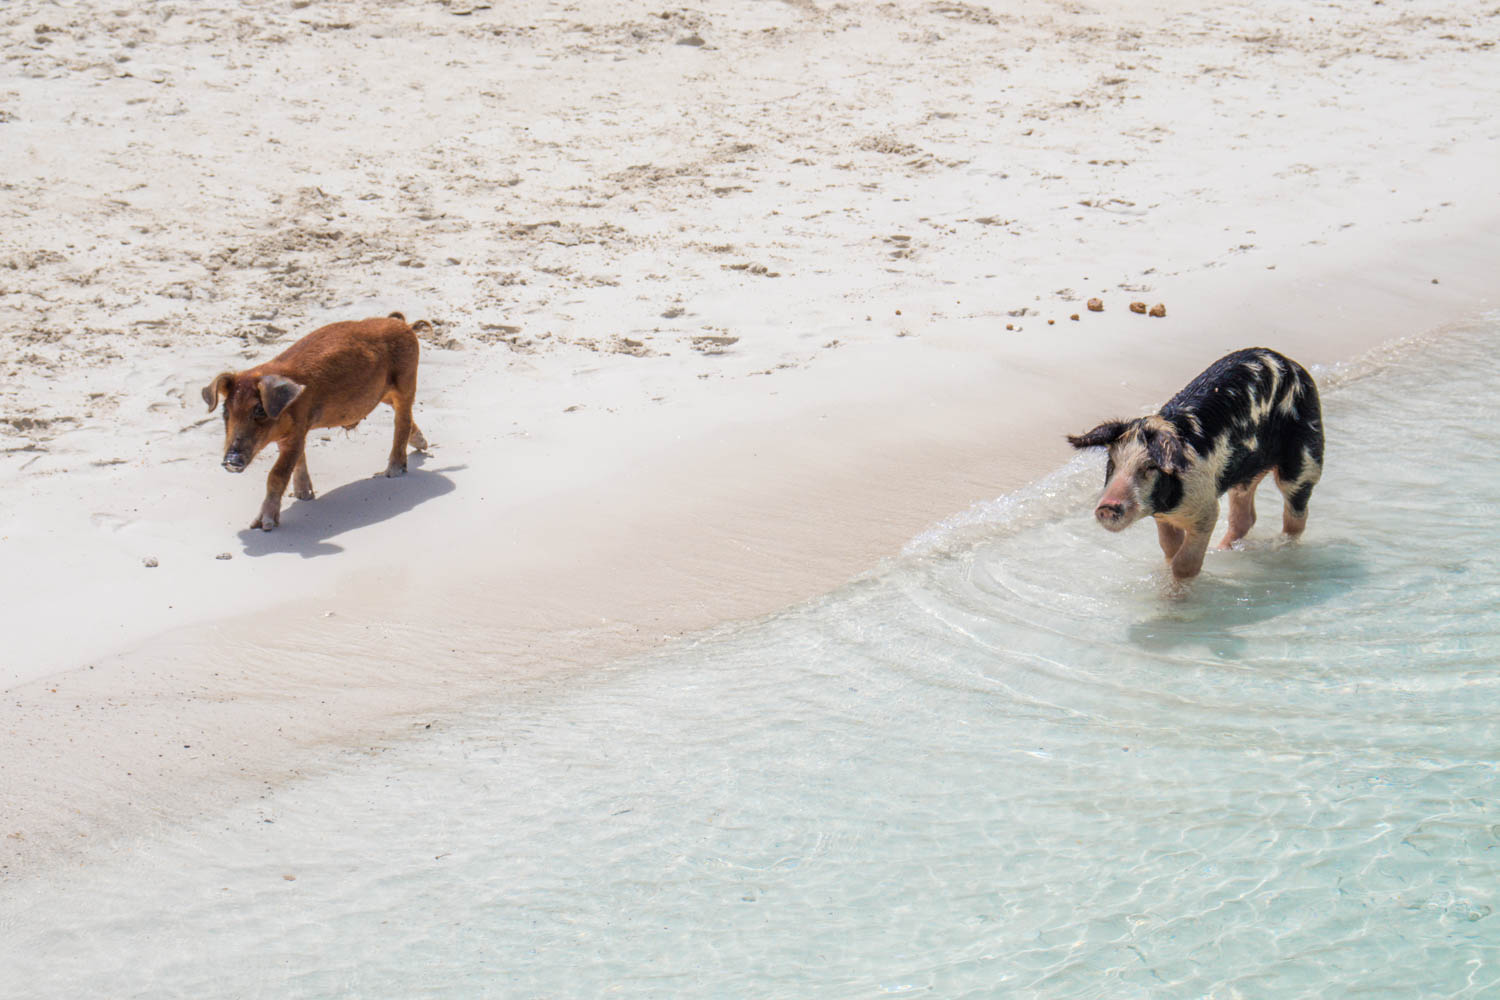 Take a Bahamas swimming pigs Exuma tour today. Your visit to Big Major Cay will include interaction with the Exuma pigs.